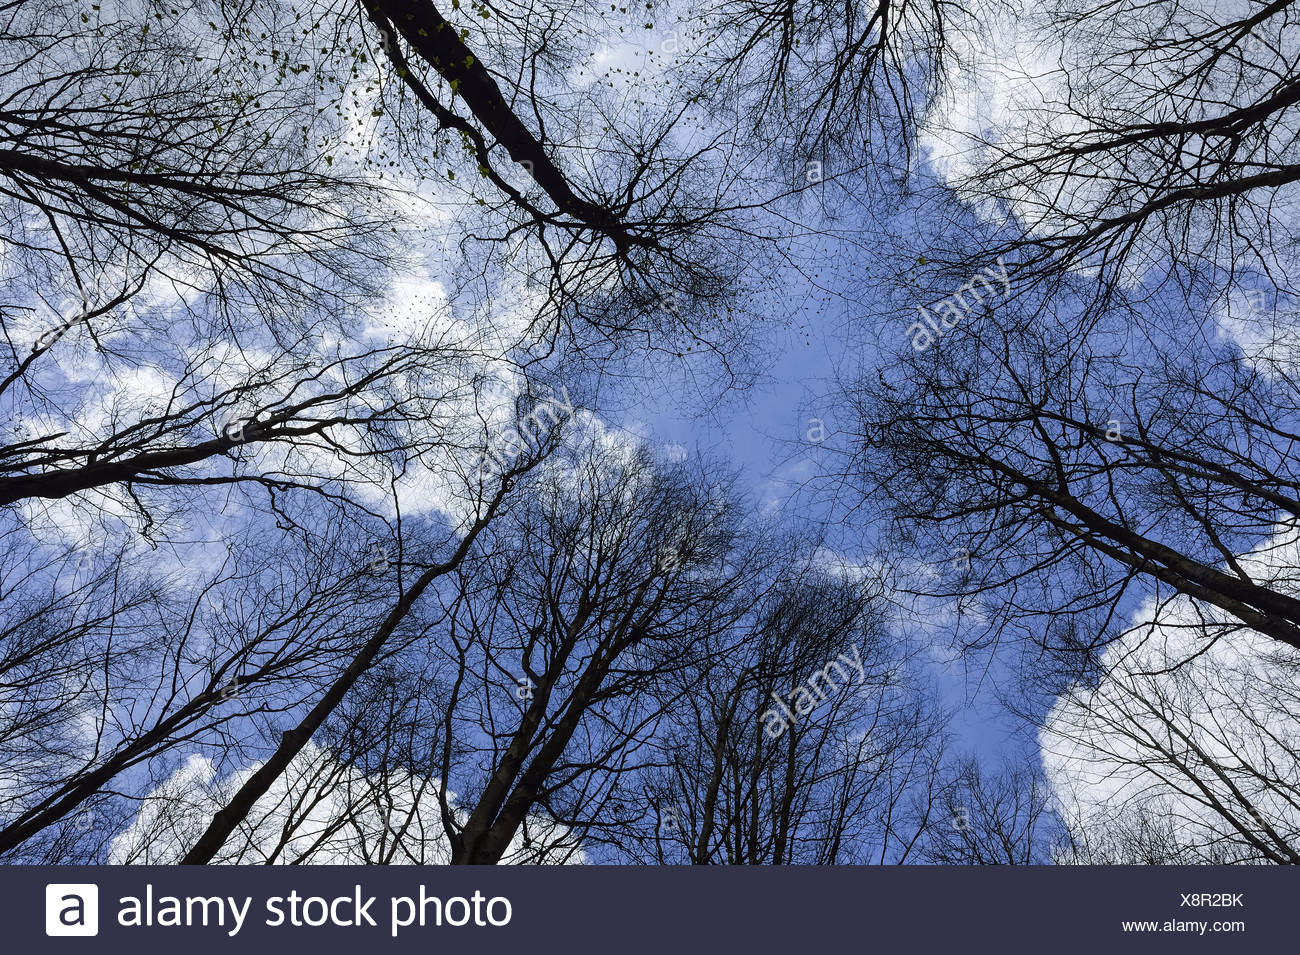 broad leaved trees stockfotos broad leaved trees bilder alamy. Black Bedroom Furniture Sets. Home Design Ideas